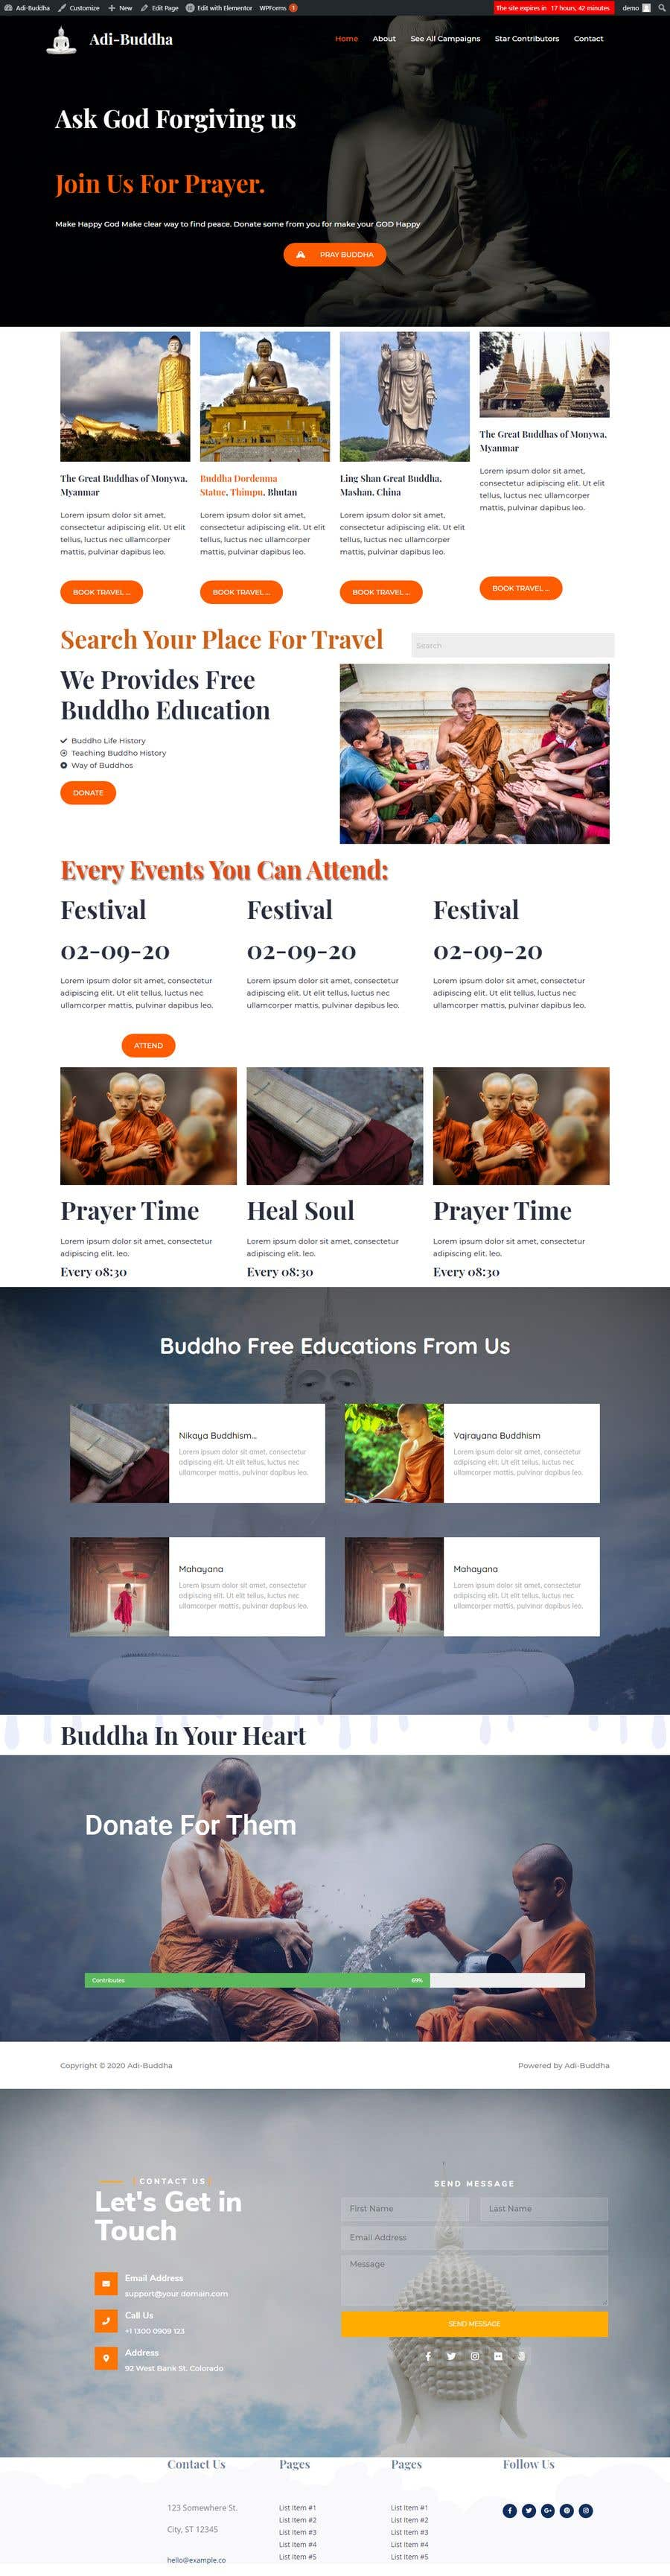 Konkurrenceindlæg #                                        40                                      for                                         A Professional Web Designer is require to design a Buddhist Charity Website